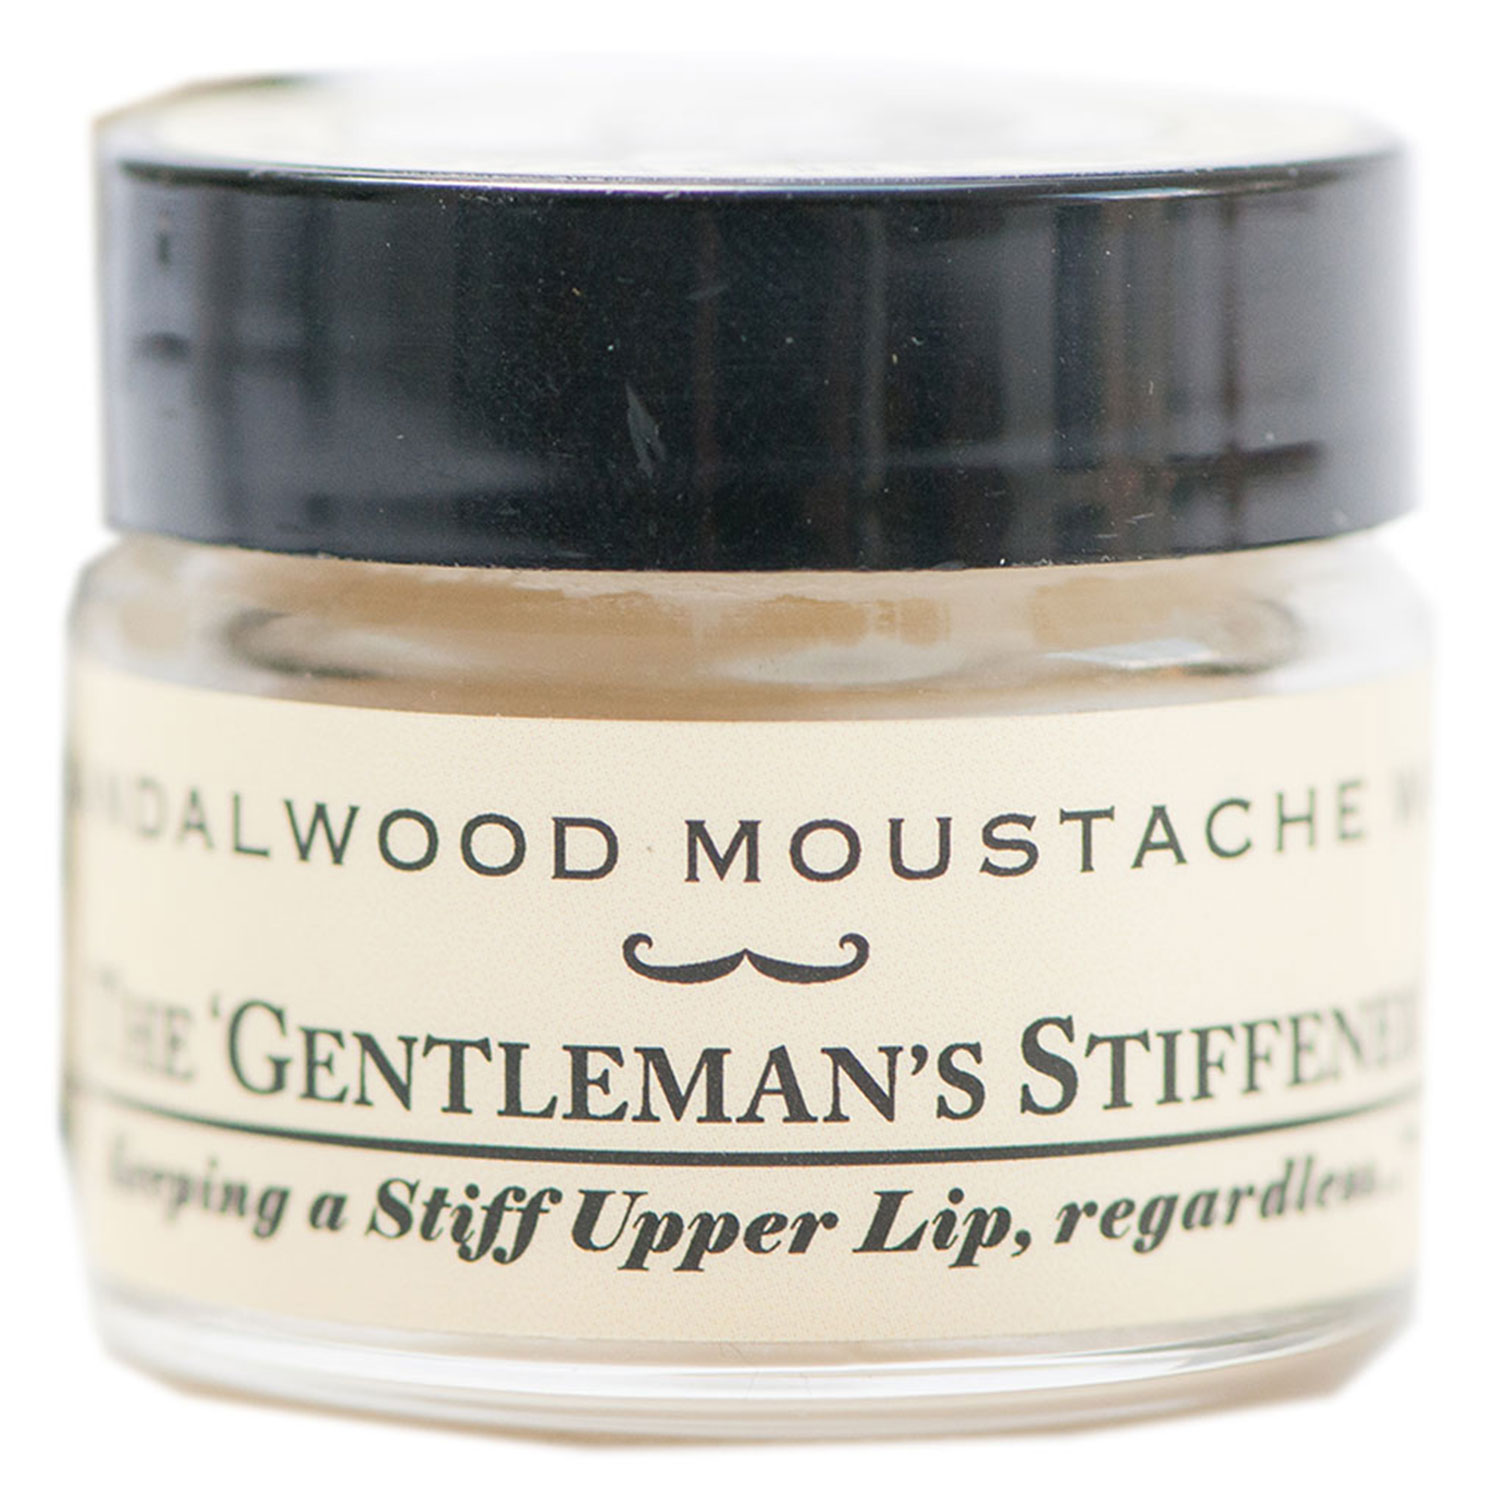 Capt. Fawcett Care - Sandalwood Moustache Wax